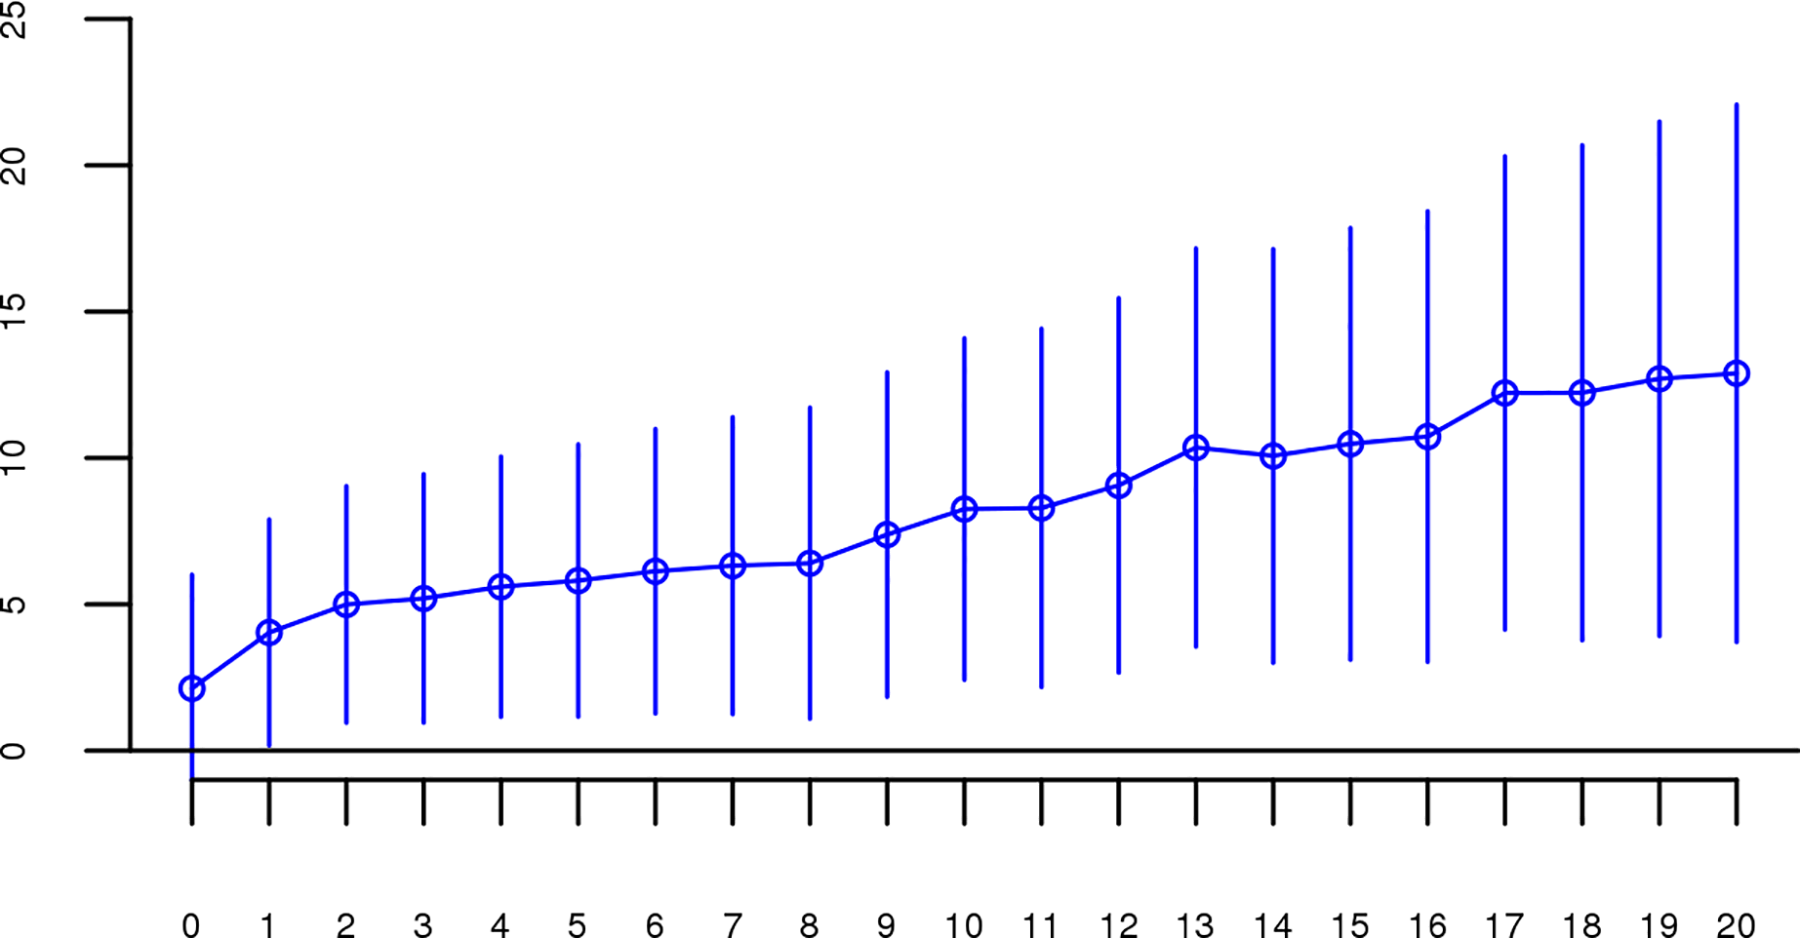 Slope estimates (the change in log odds for a 1% increase in <i>Froh</i>; points) and their 95% confidence intervals (bars) of <i>Froh</i> from the combined unimputed SNP data predicting schizophrenia for different Mb thresholds of calling ROHs.